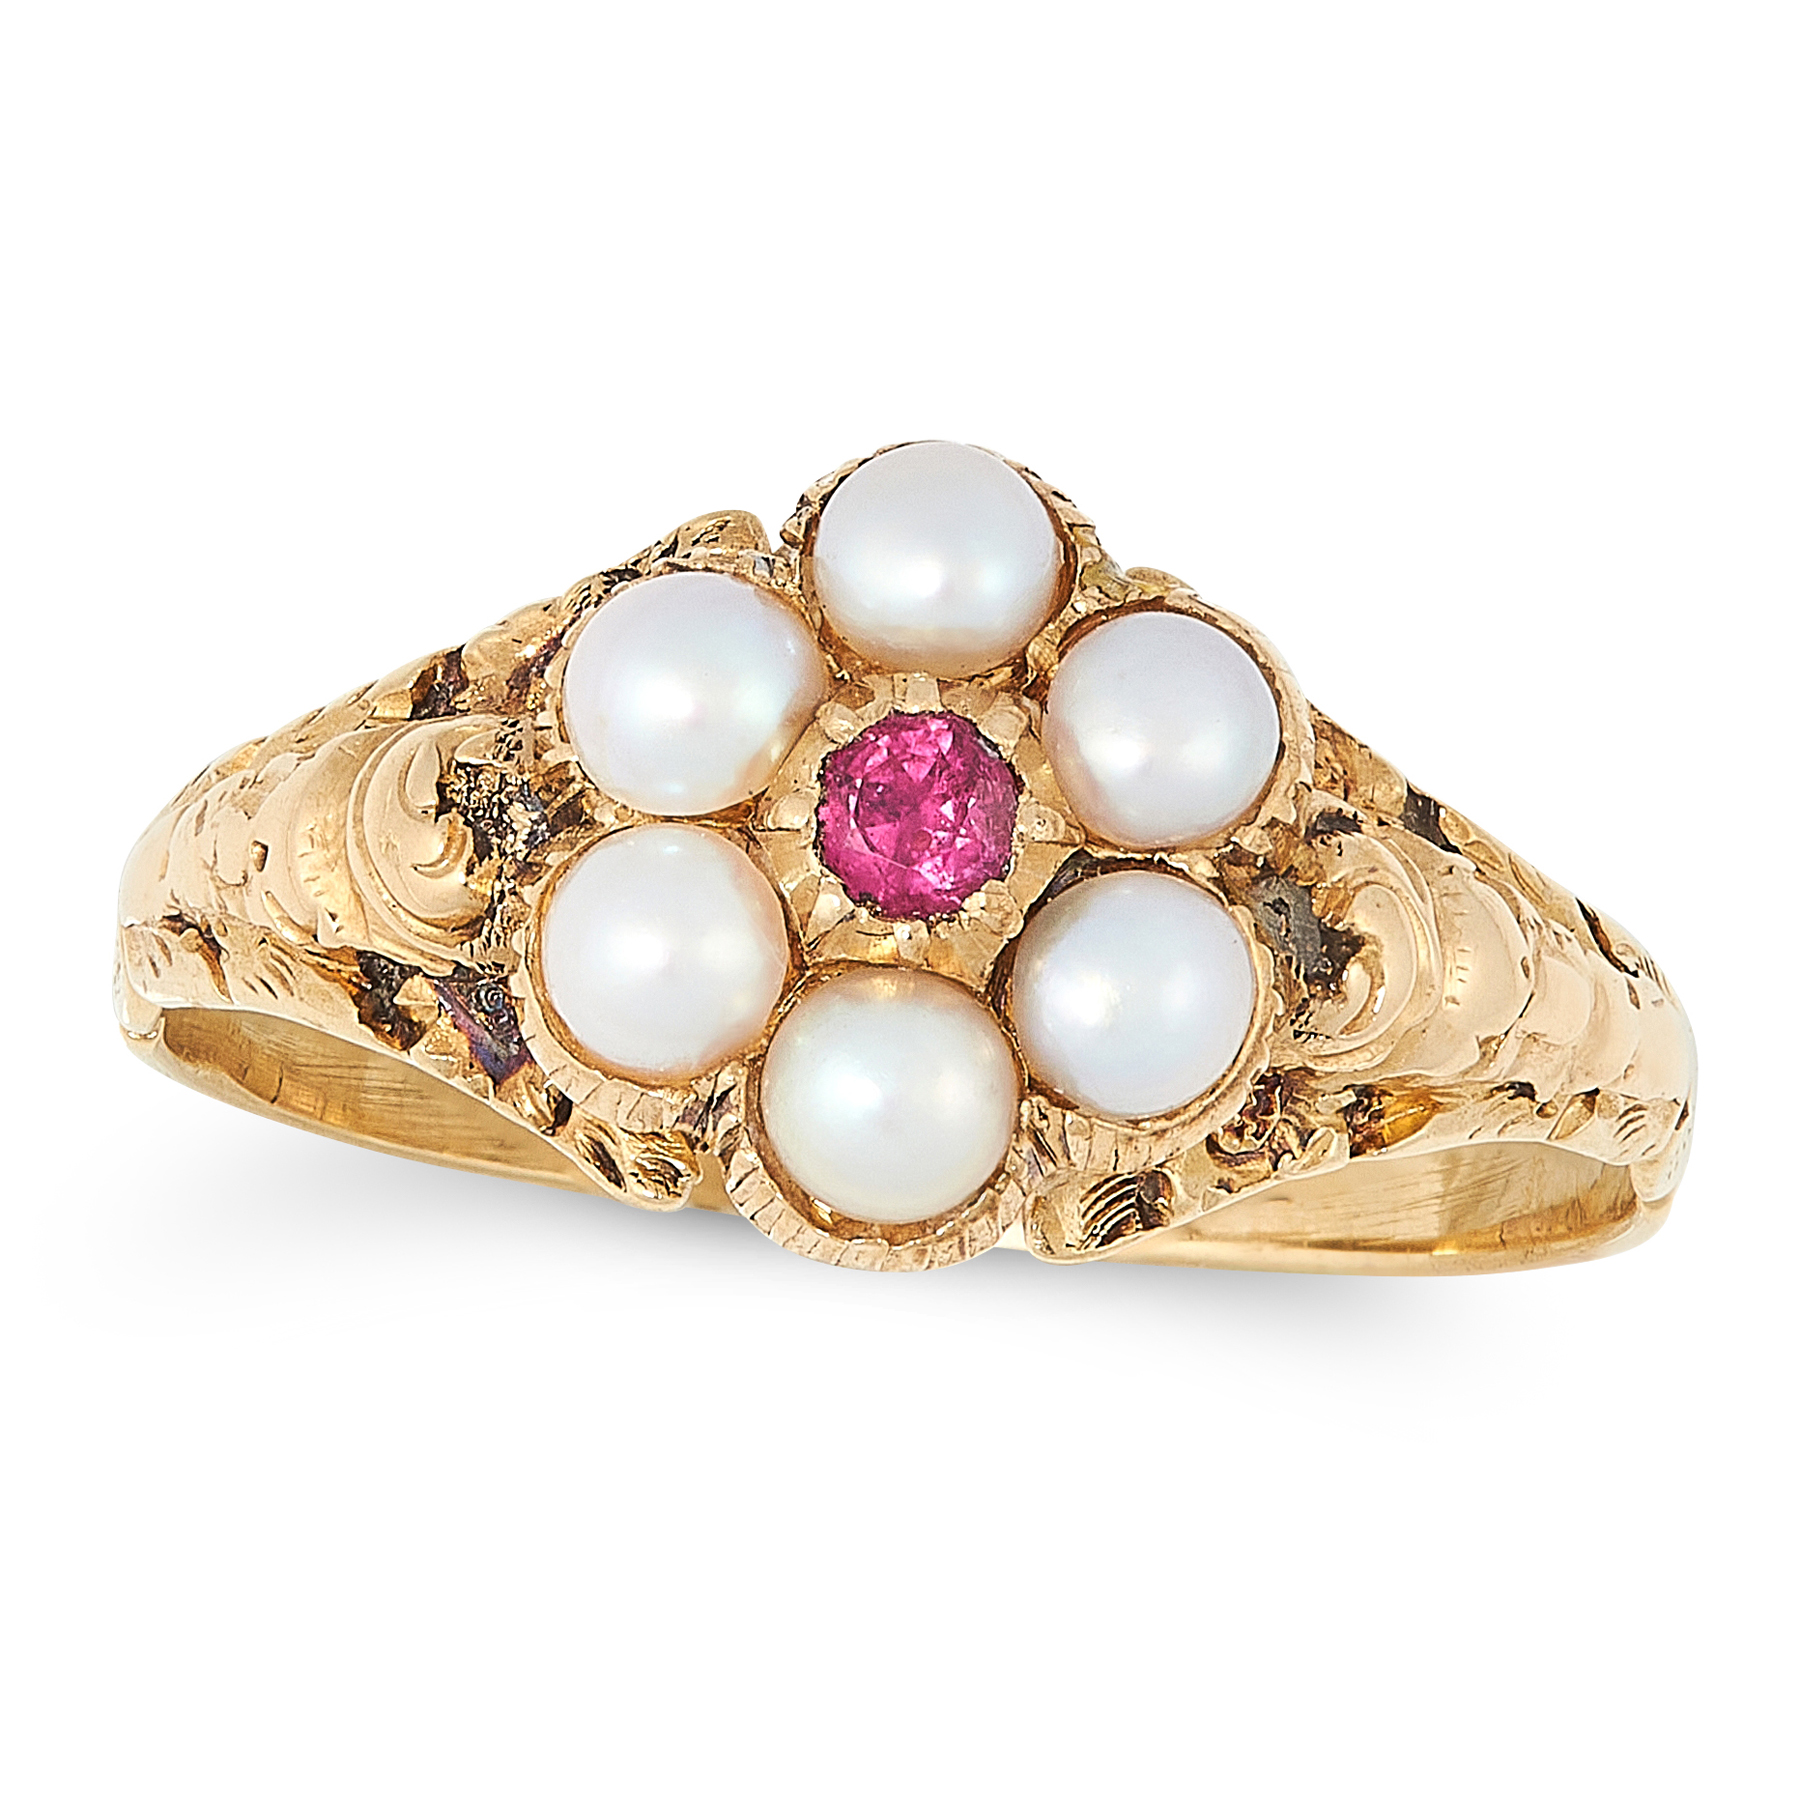 A RUBY, PEARL AND HAIRWORK MOURNING RING, 19TH CENTURY in 15ct yellow gold, set with a round cut